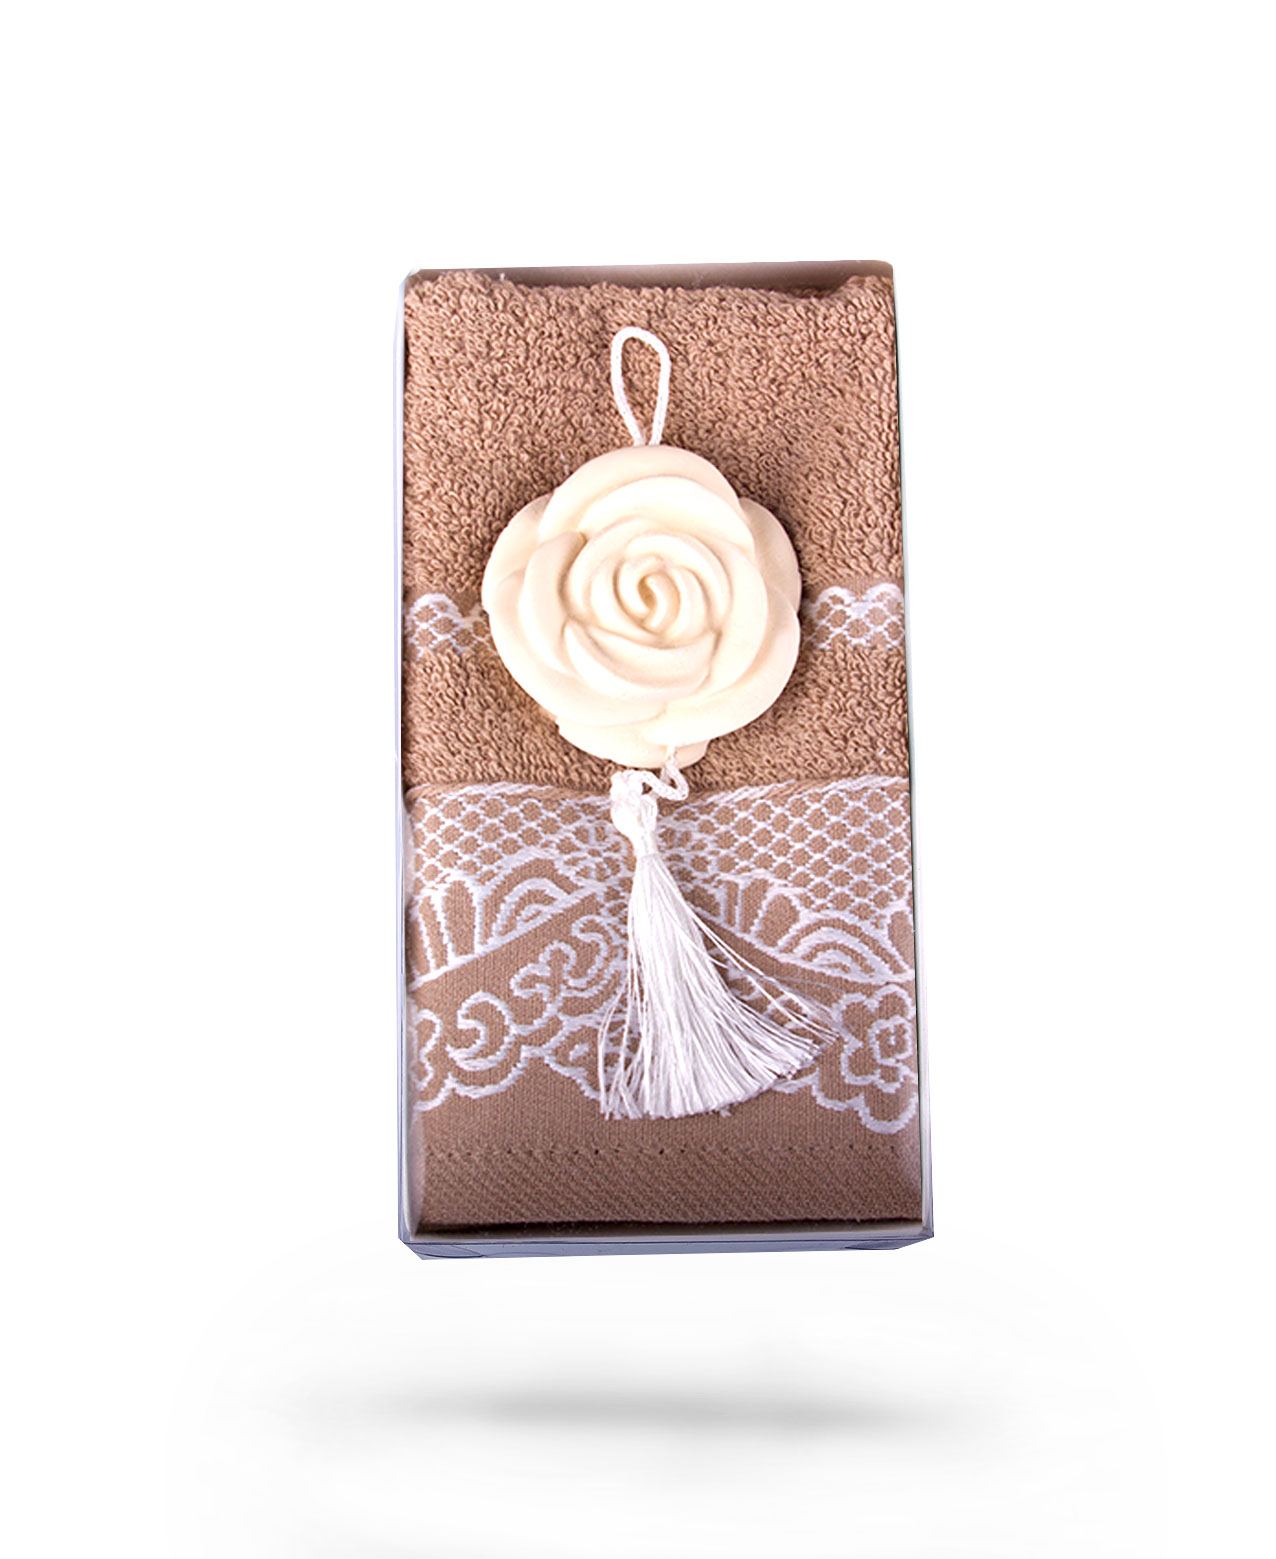 Brown Towel & Jasmin Scented Stone Wall Ornament Gift Set